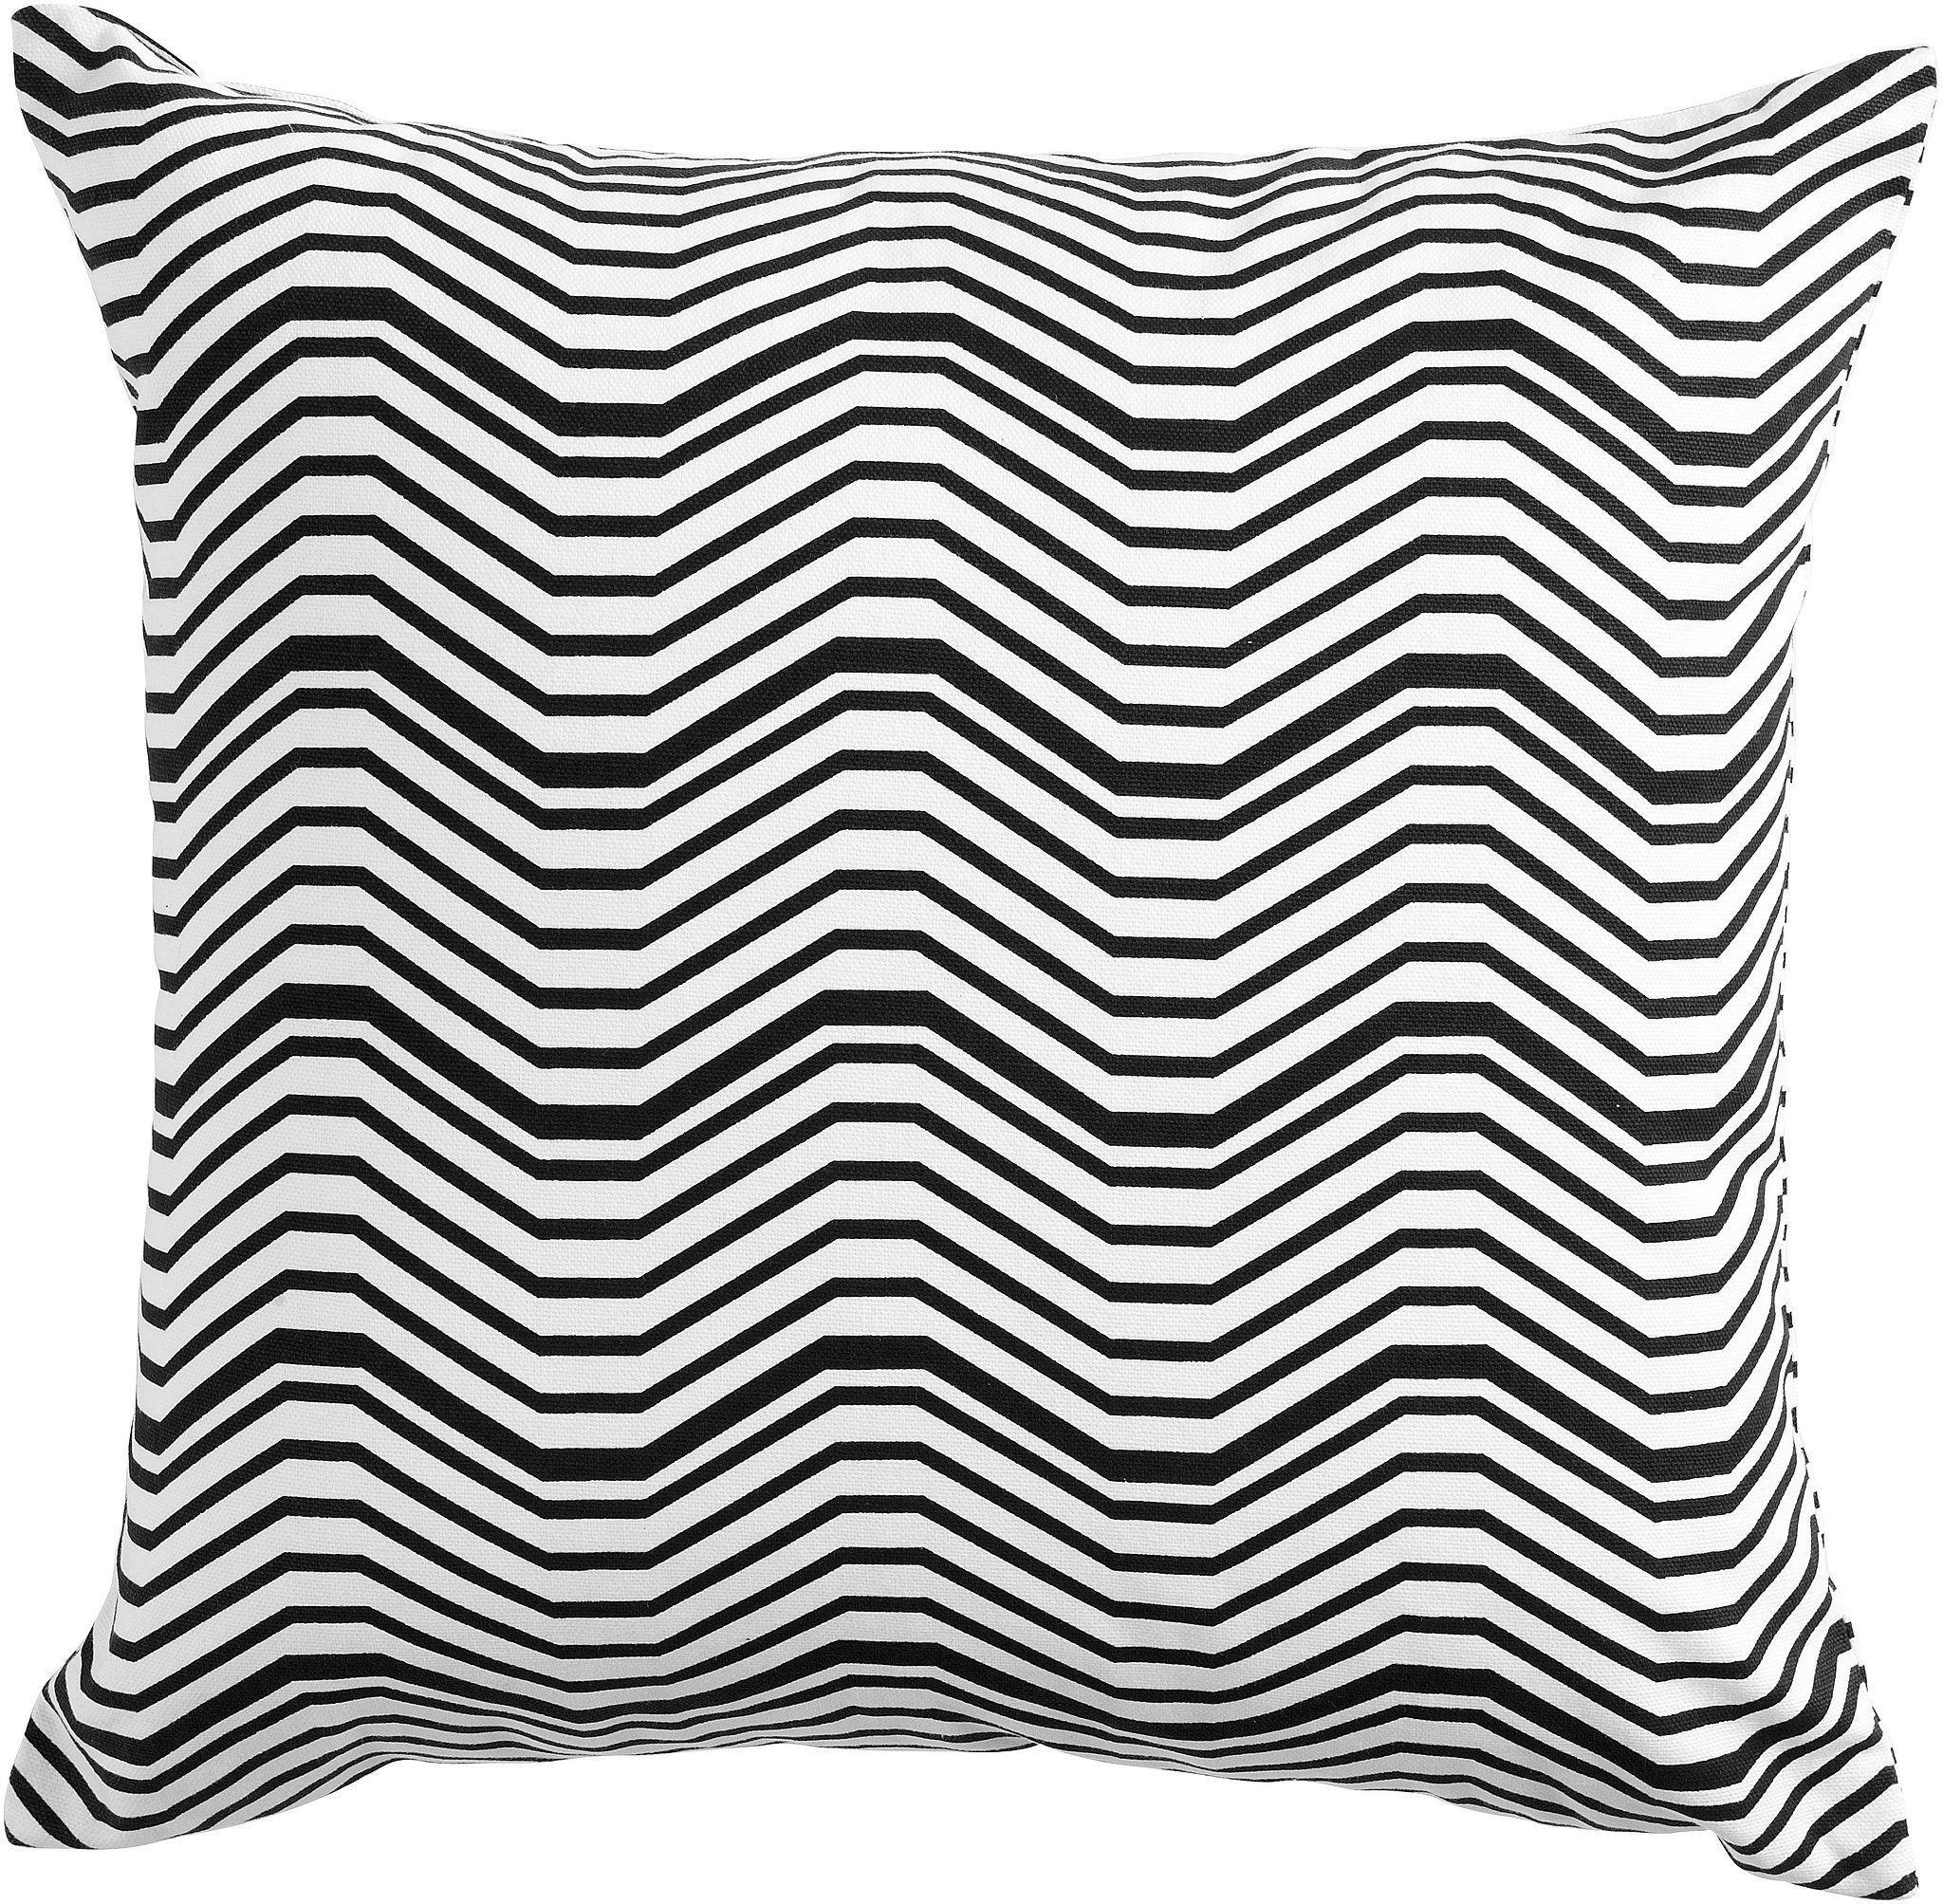 info bred fabric sale ilves home pillows pillow for target missoni